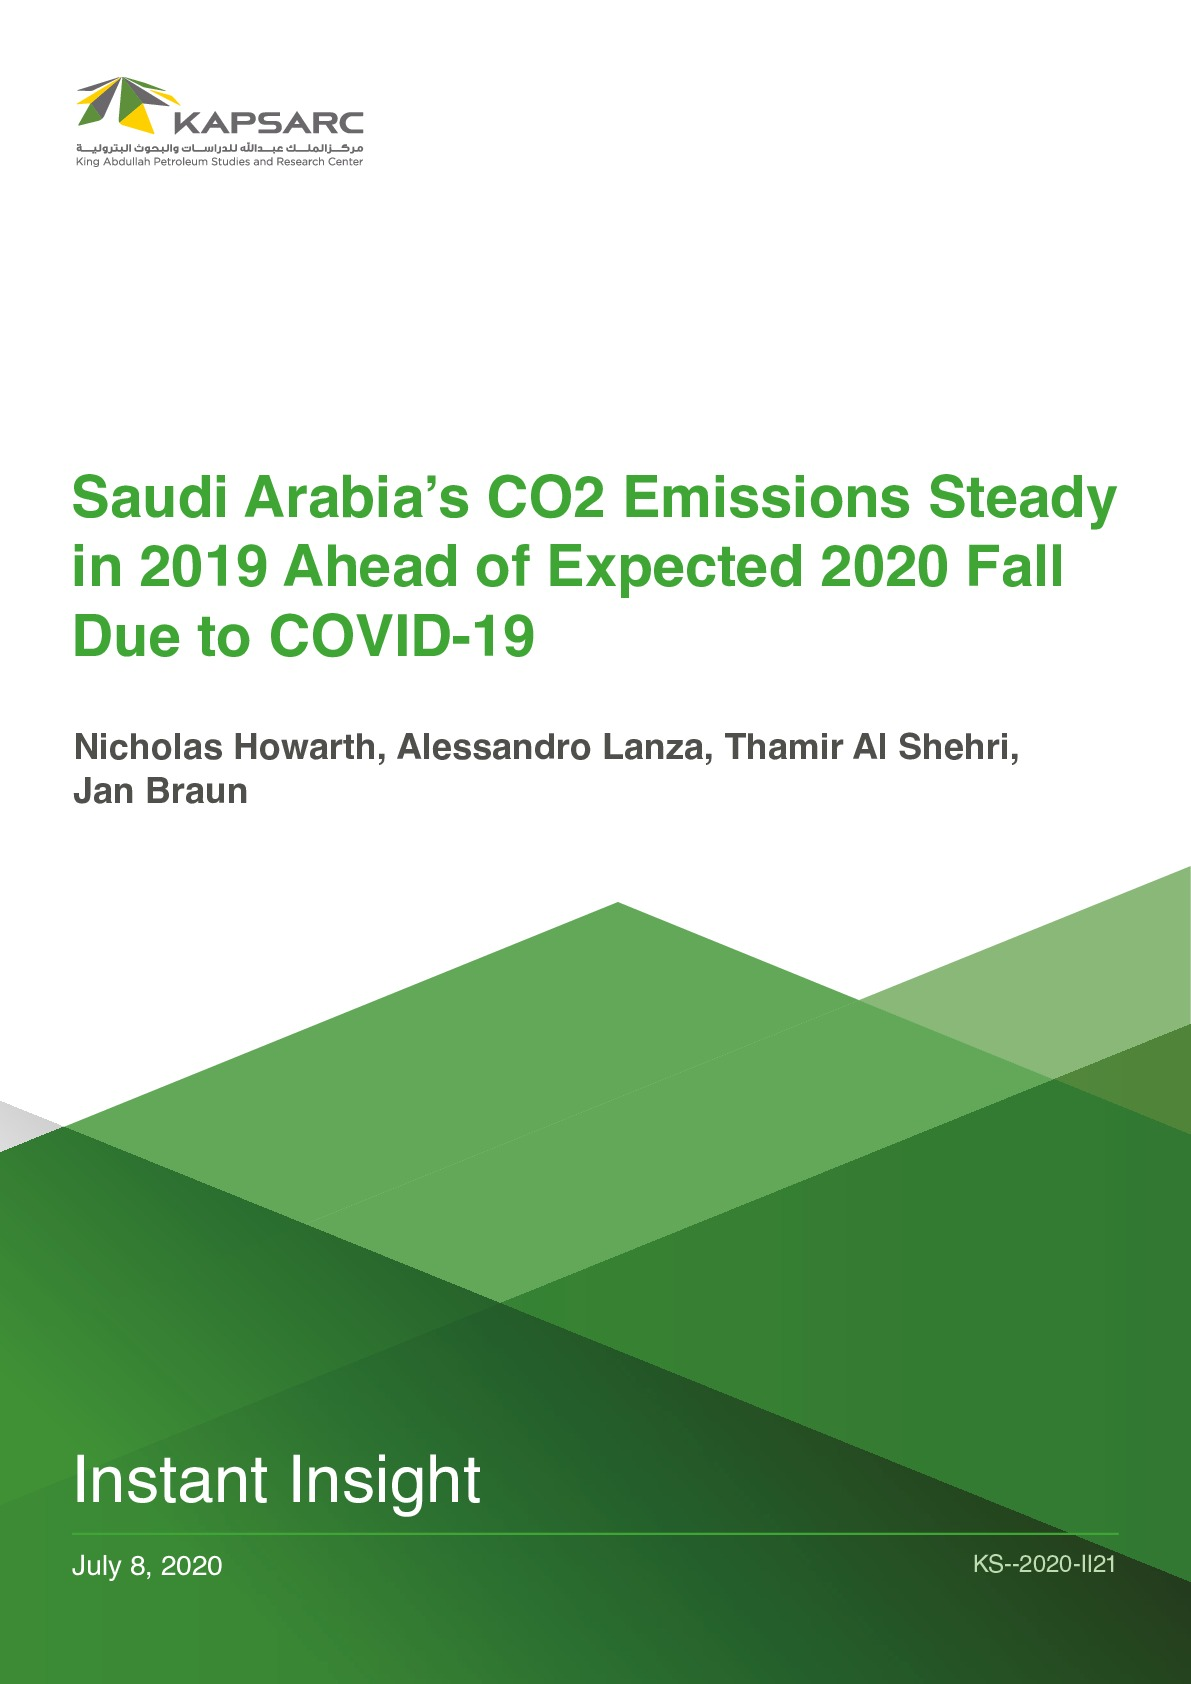 Saudi Arabia's CO2 Emissions Steady in 2019 Ahead of Expected 2020 Fall Due to COVID-19